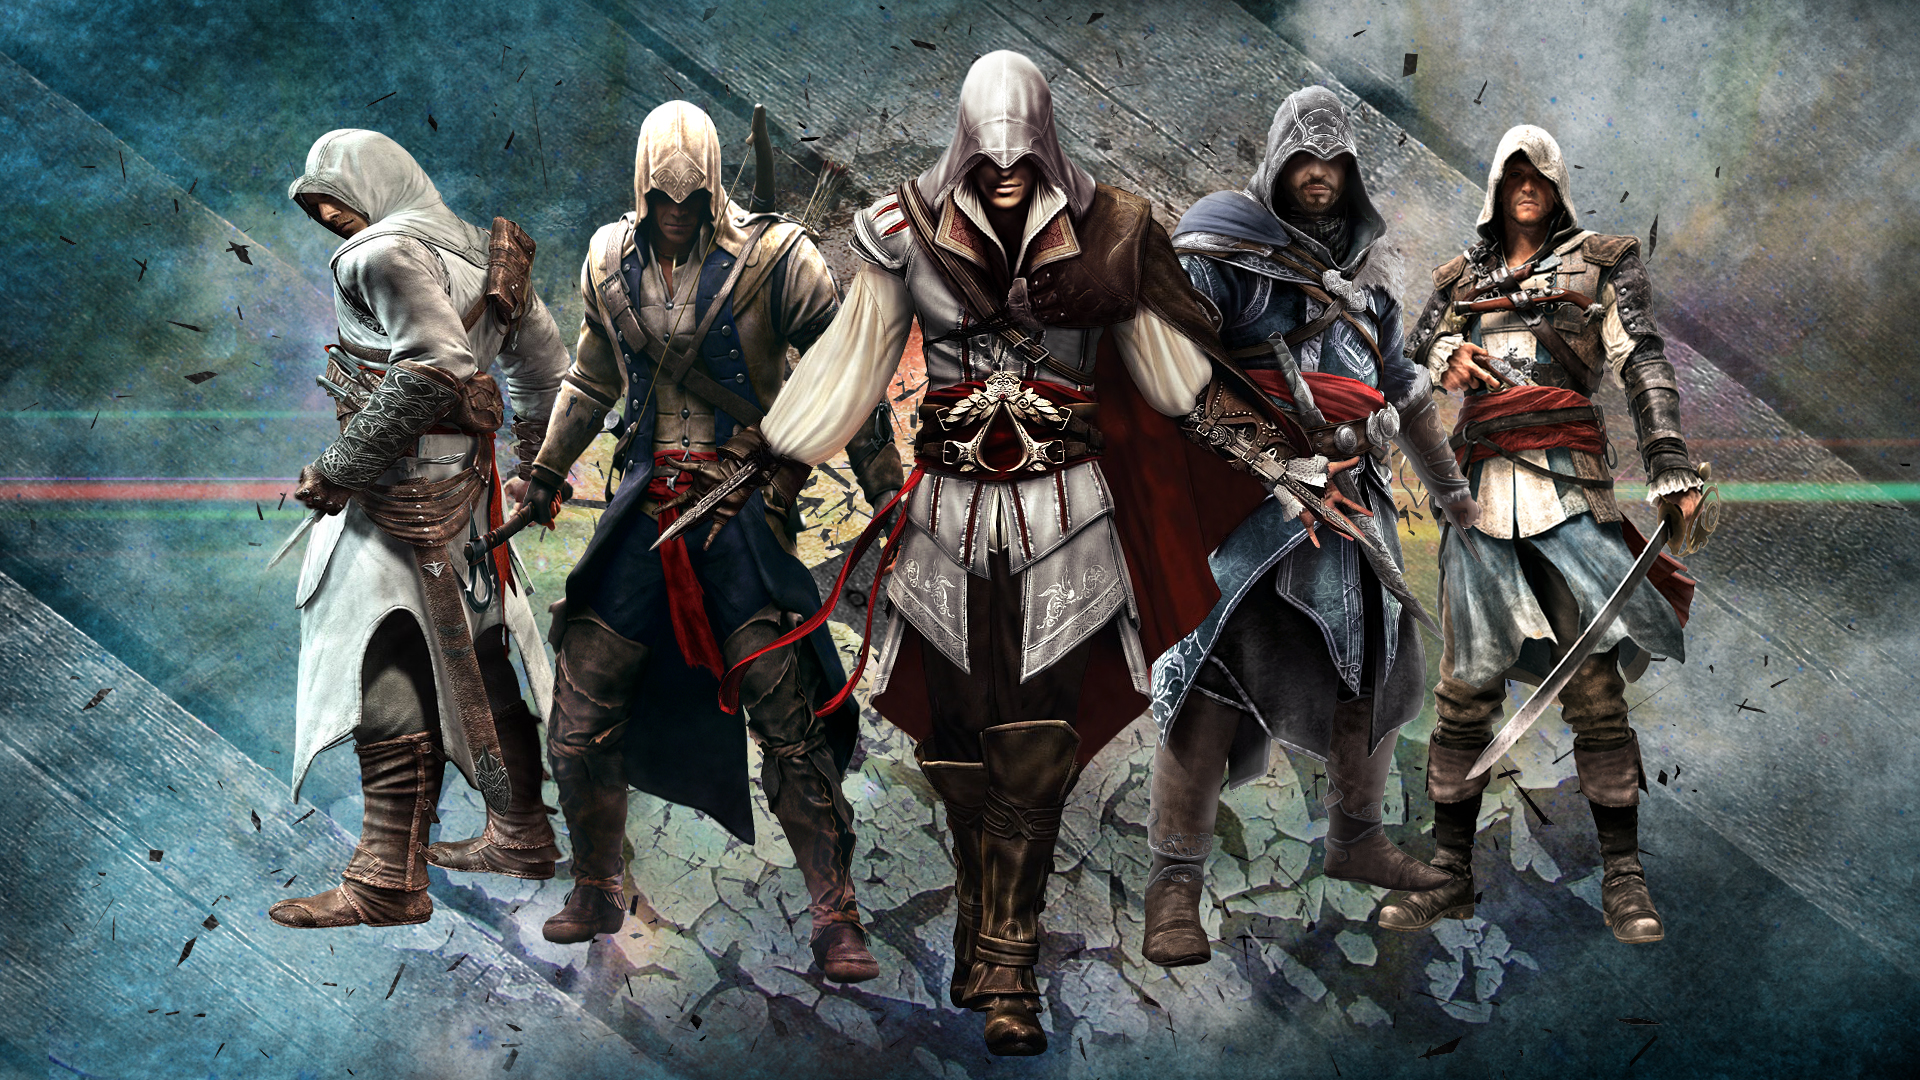 Games We Dig – Assassin's Creed series